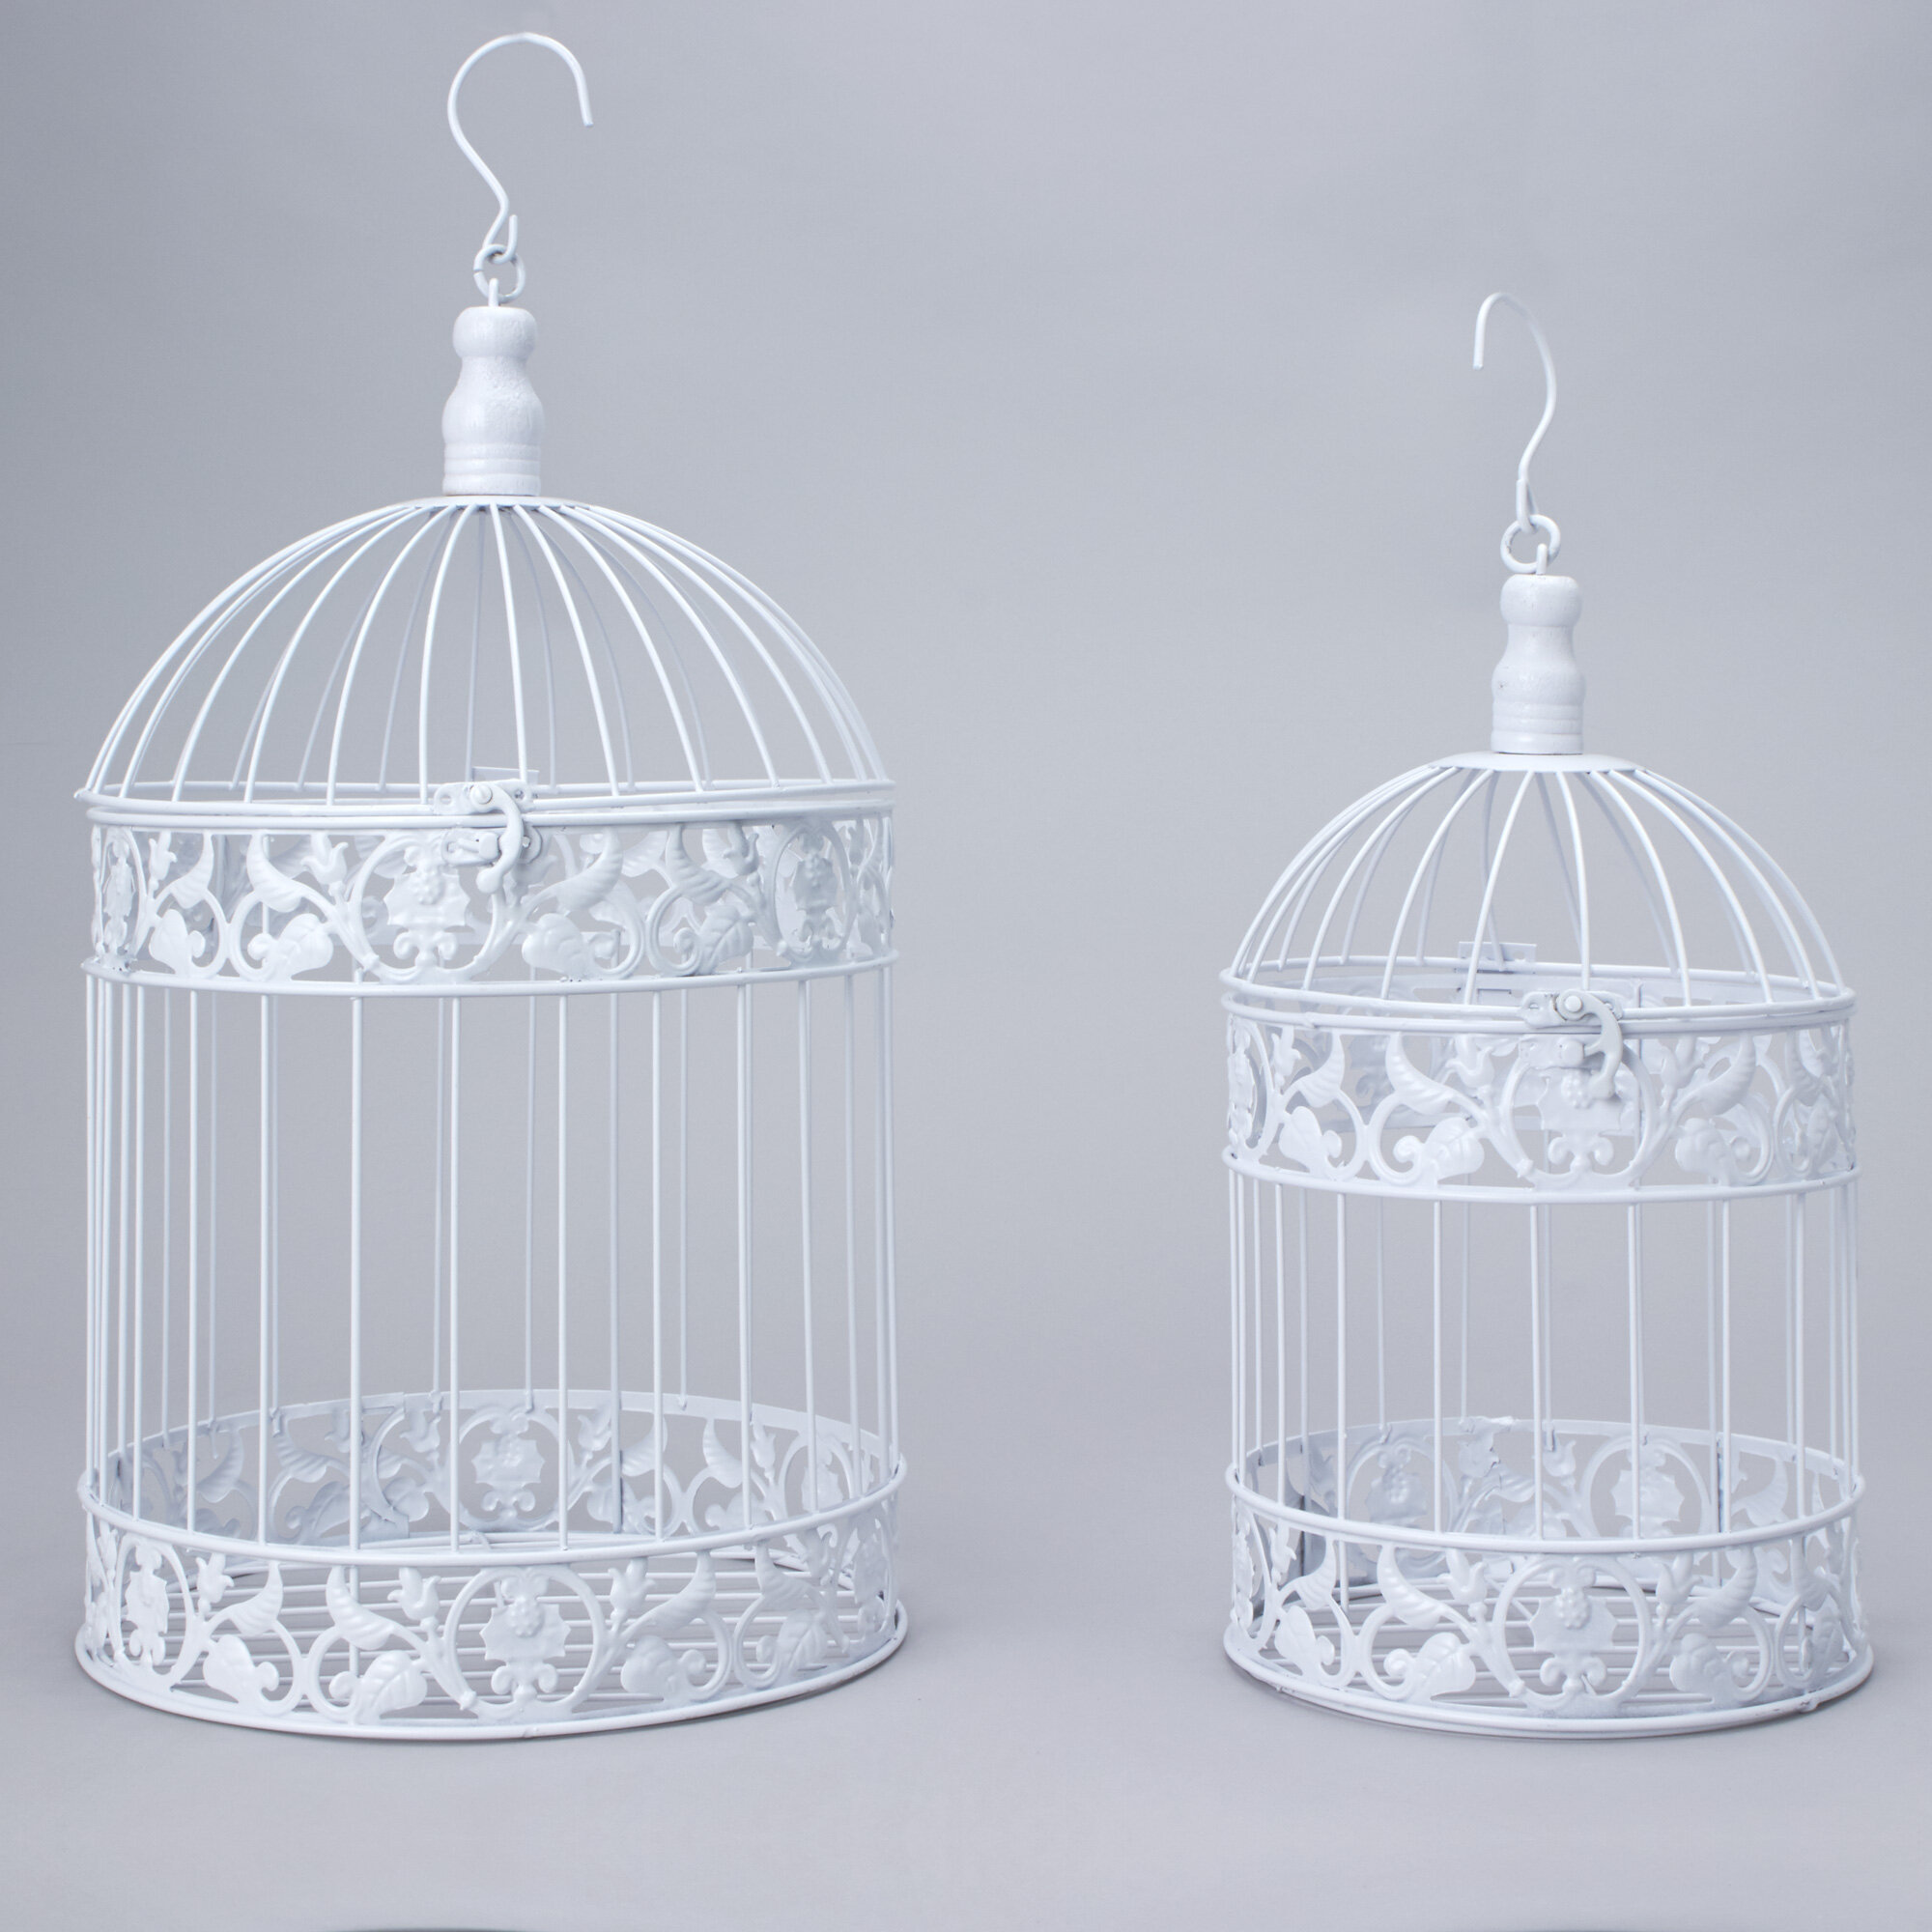 Ophelia Co 2 Piece Manuel Metal Decorative Bird Cage Set Reviews Wayfair